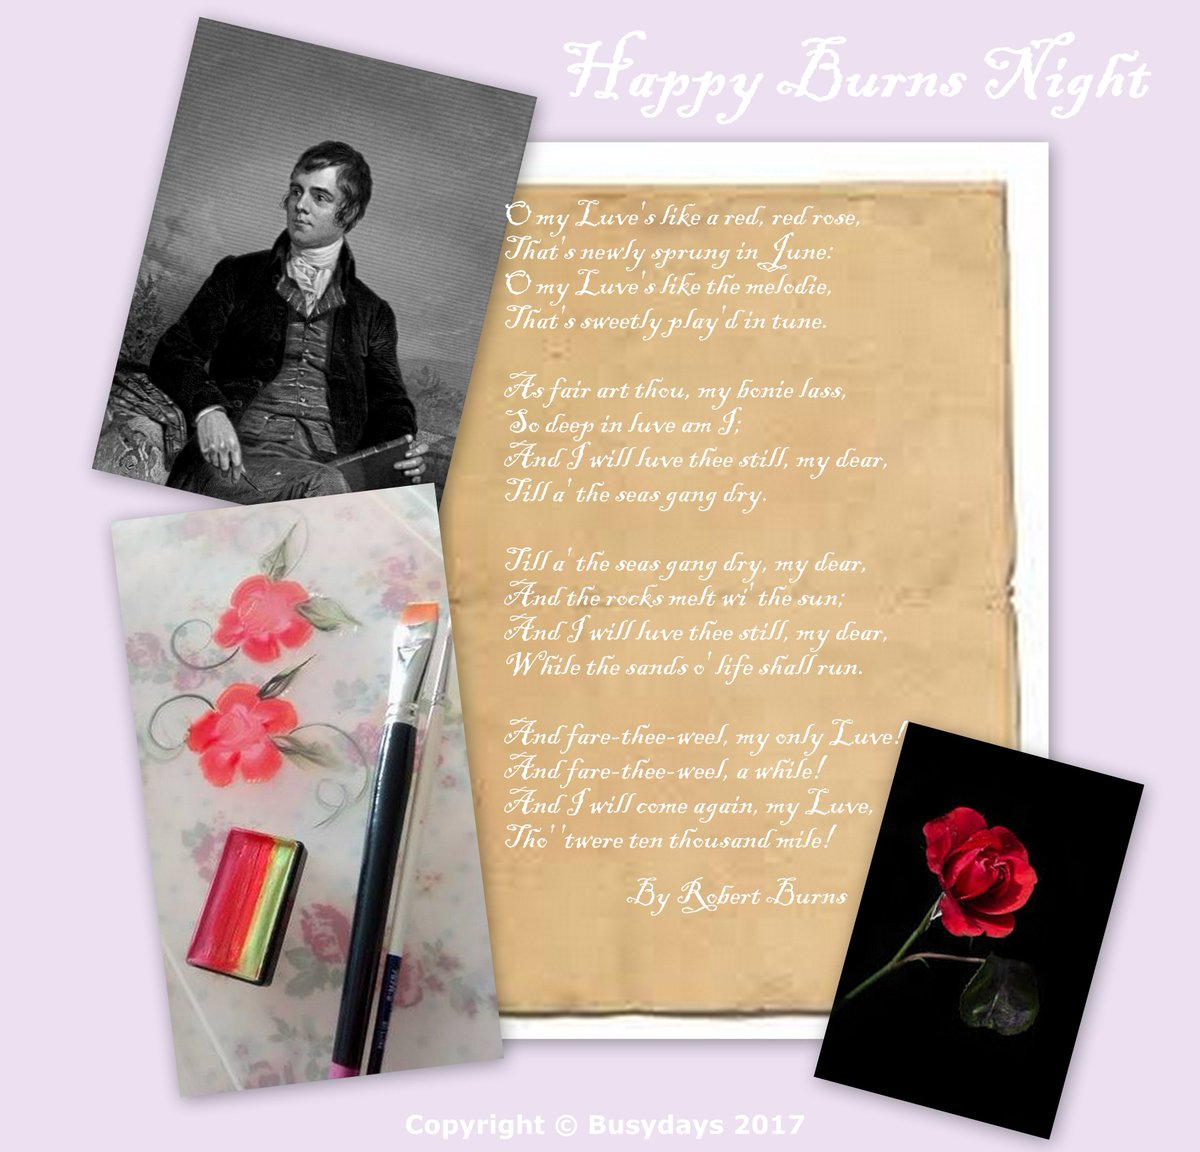 Busydays on twitter happy burns nightroses are such an busydays on twitter happy burns nightroses are such an inspiration for usthanks robert burns for reminding us burnsnight scotland facepaint m4hsunfo